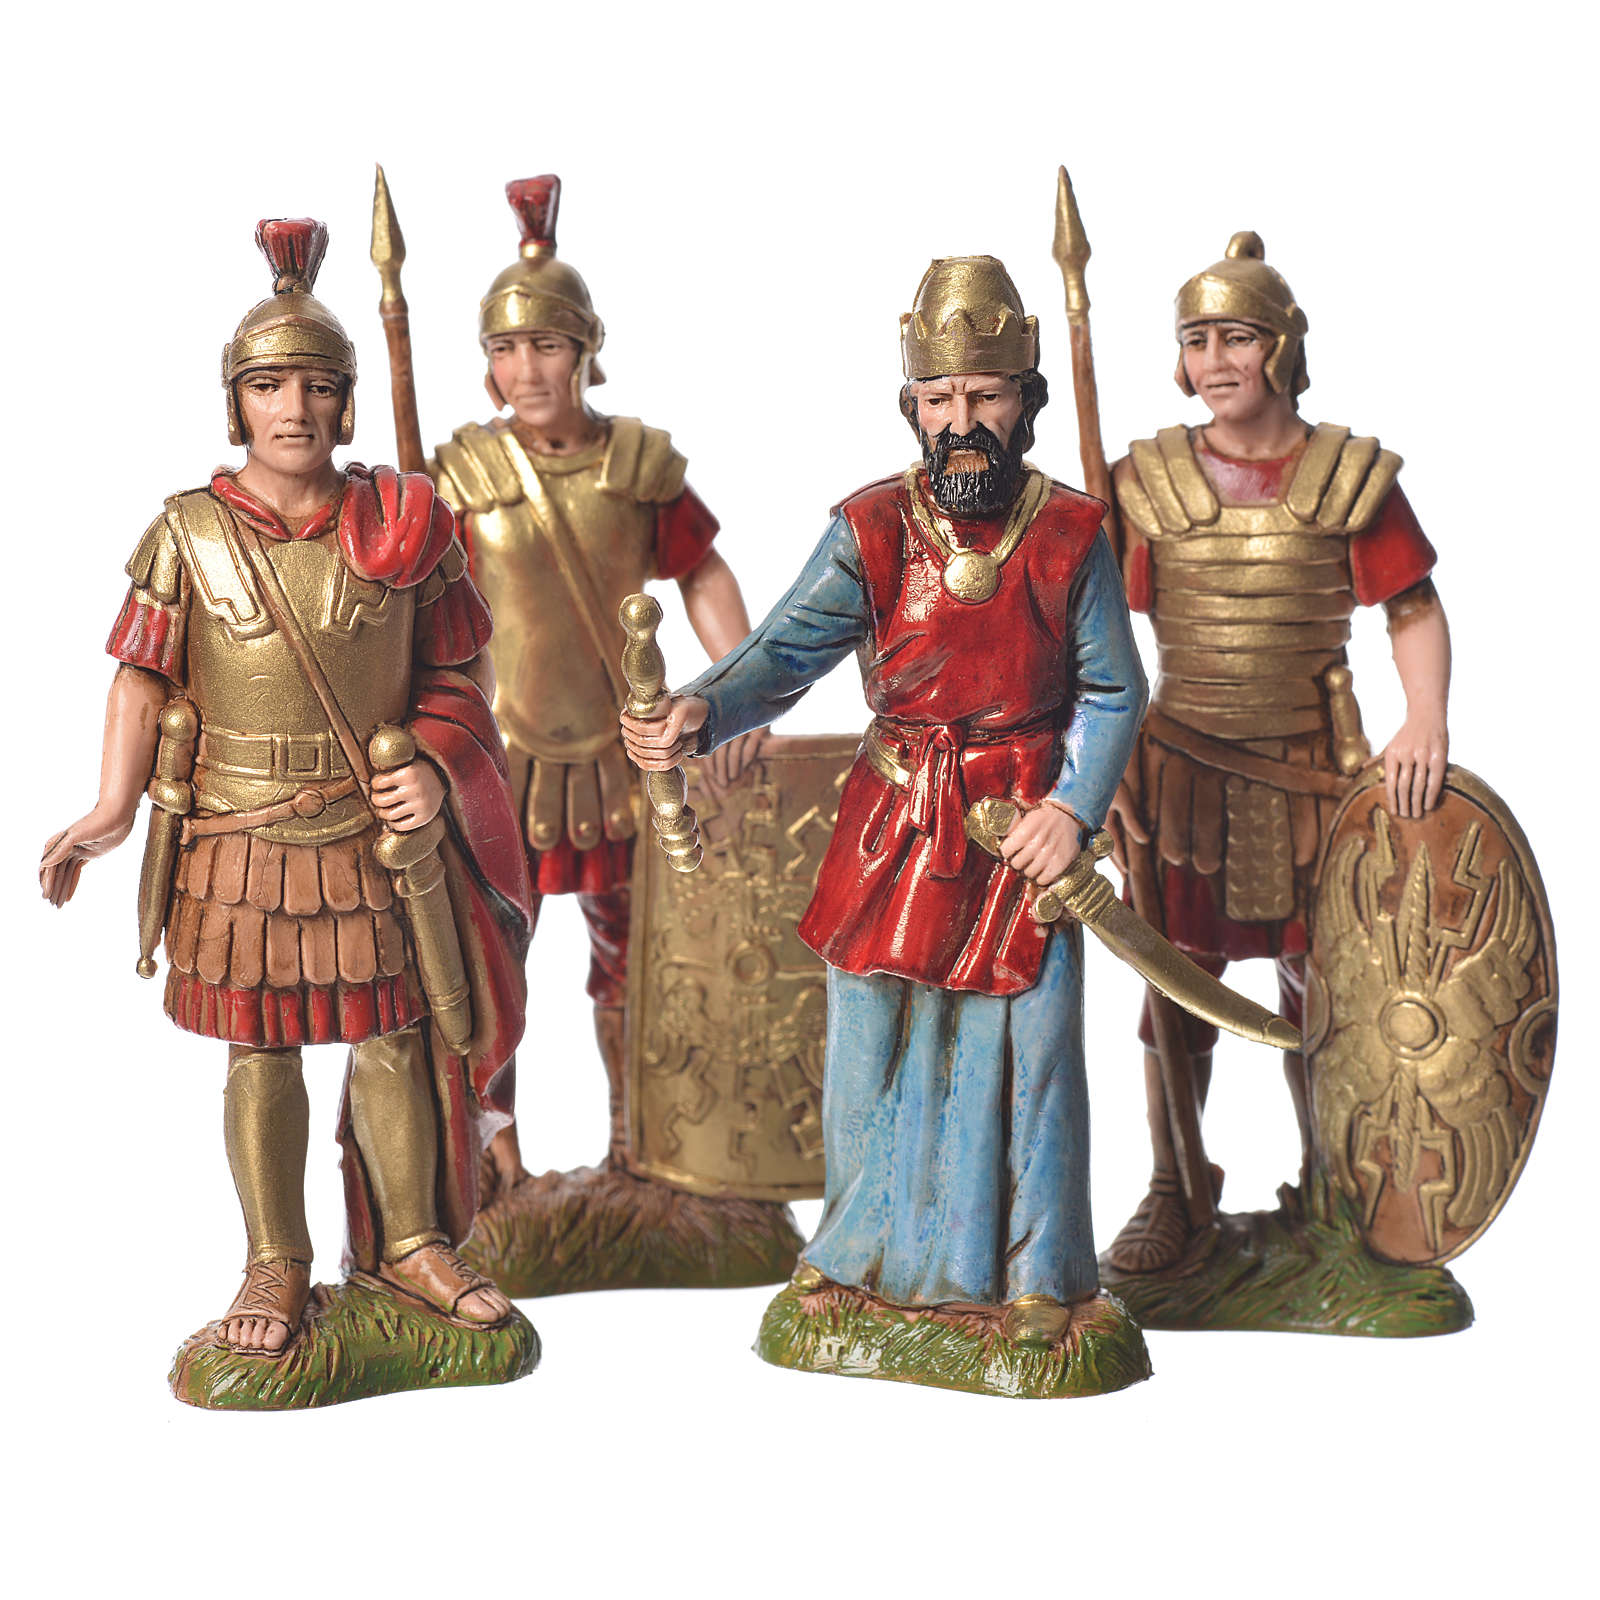 King Herod with soldiers, 4 nativity figurines, 10cm Moranduzzo 4